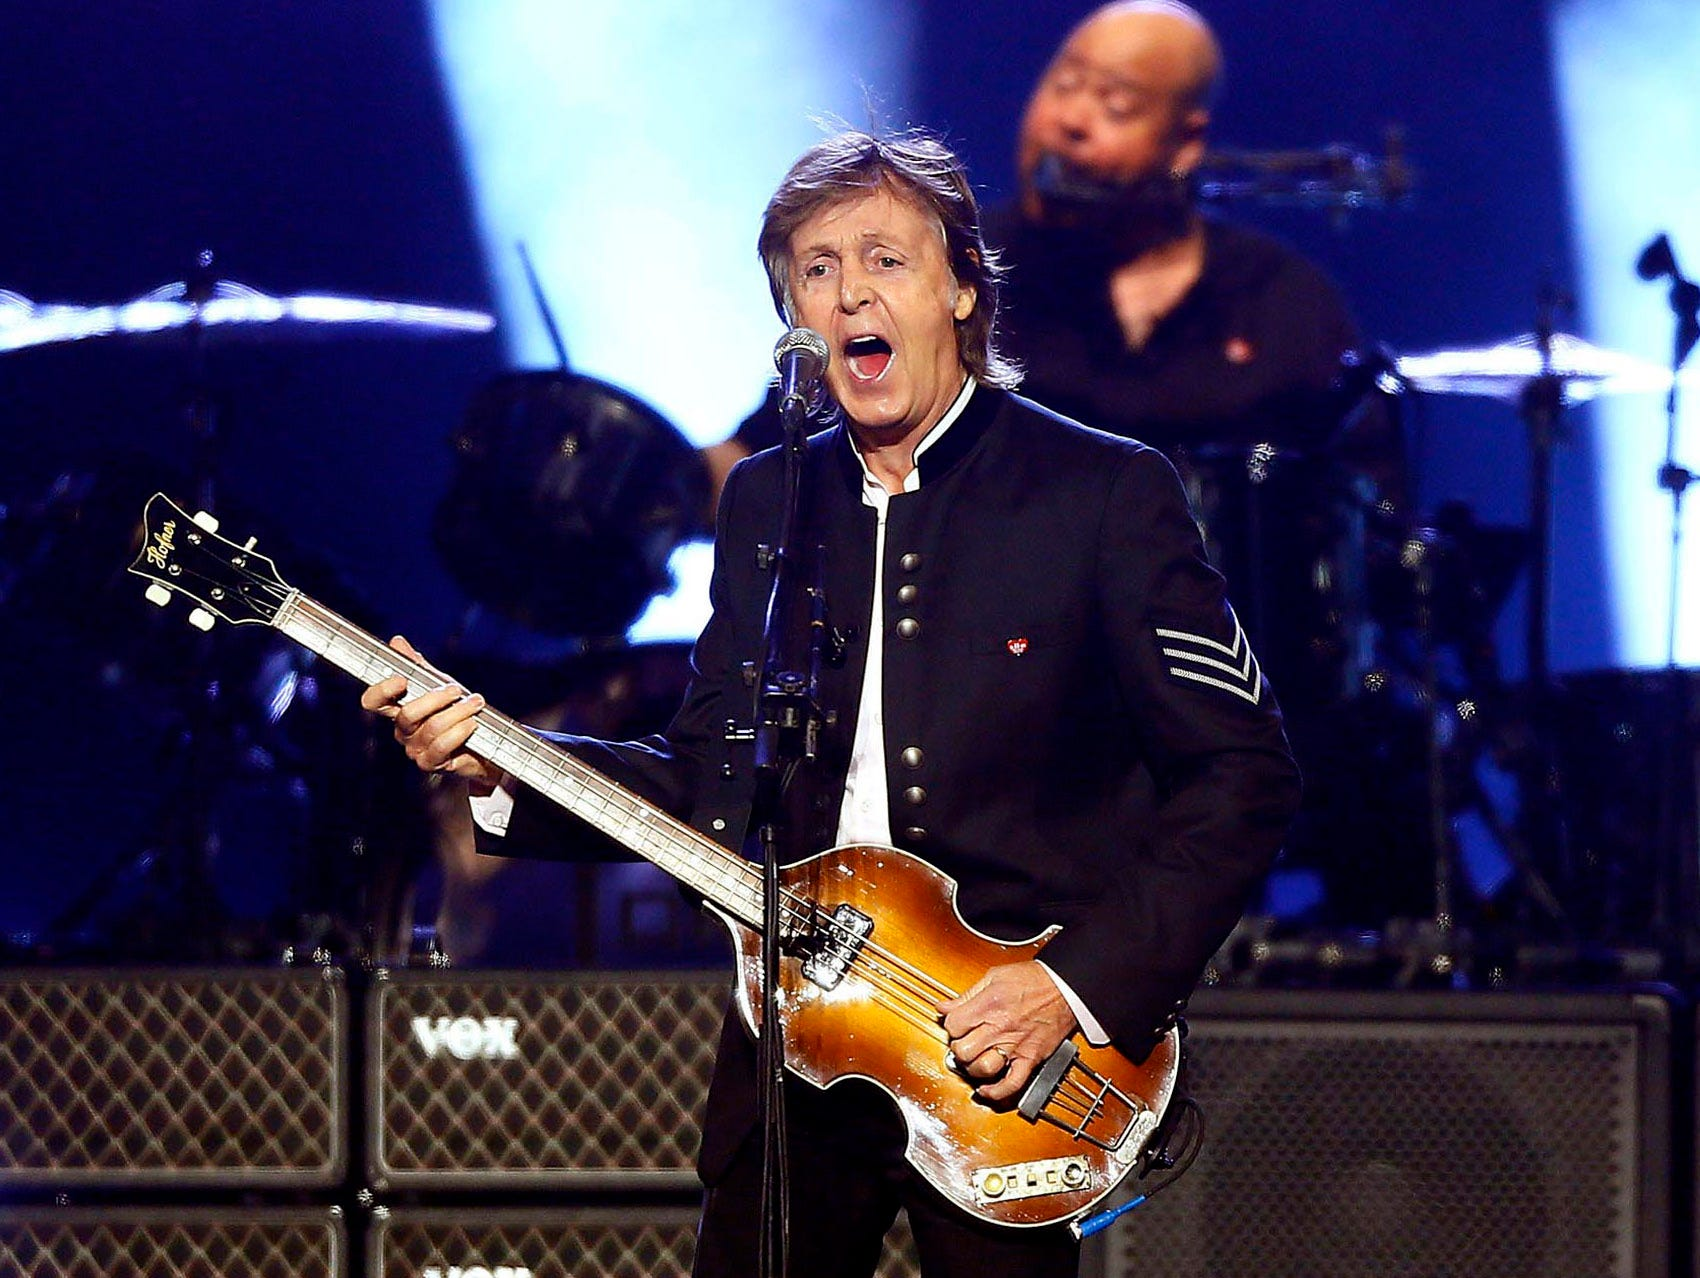 Paul McCartney plays his 2013 song, 'Save Us' during his One On One 2017 U.S. tour with his first-ever show at the Prudential Center in Newark NJ where he will play for two nights. September 11, 2017, Newark, NJ